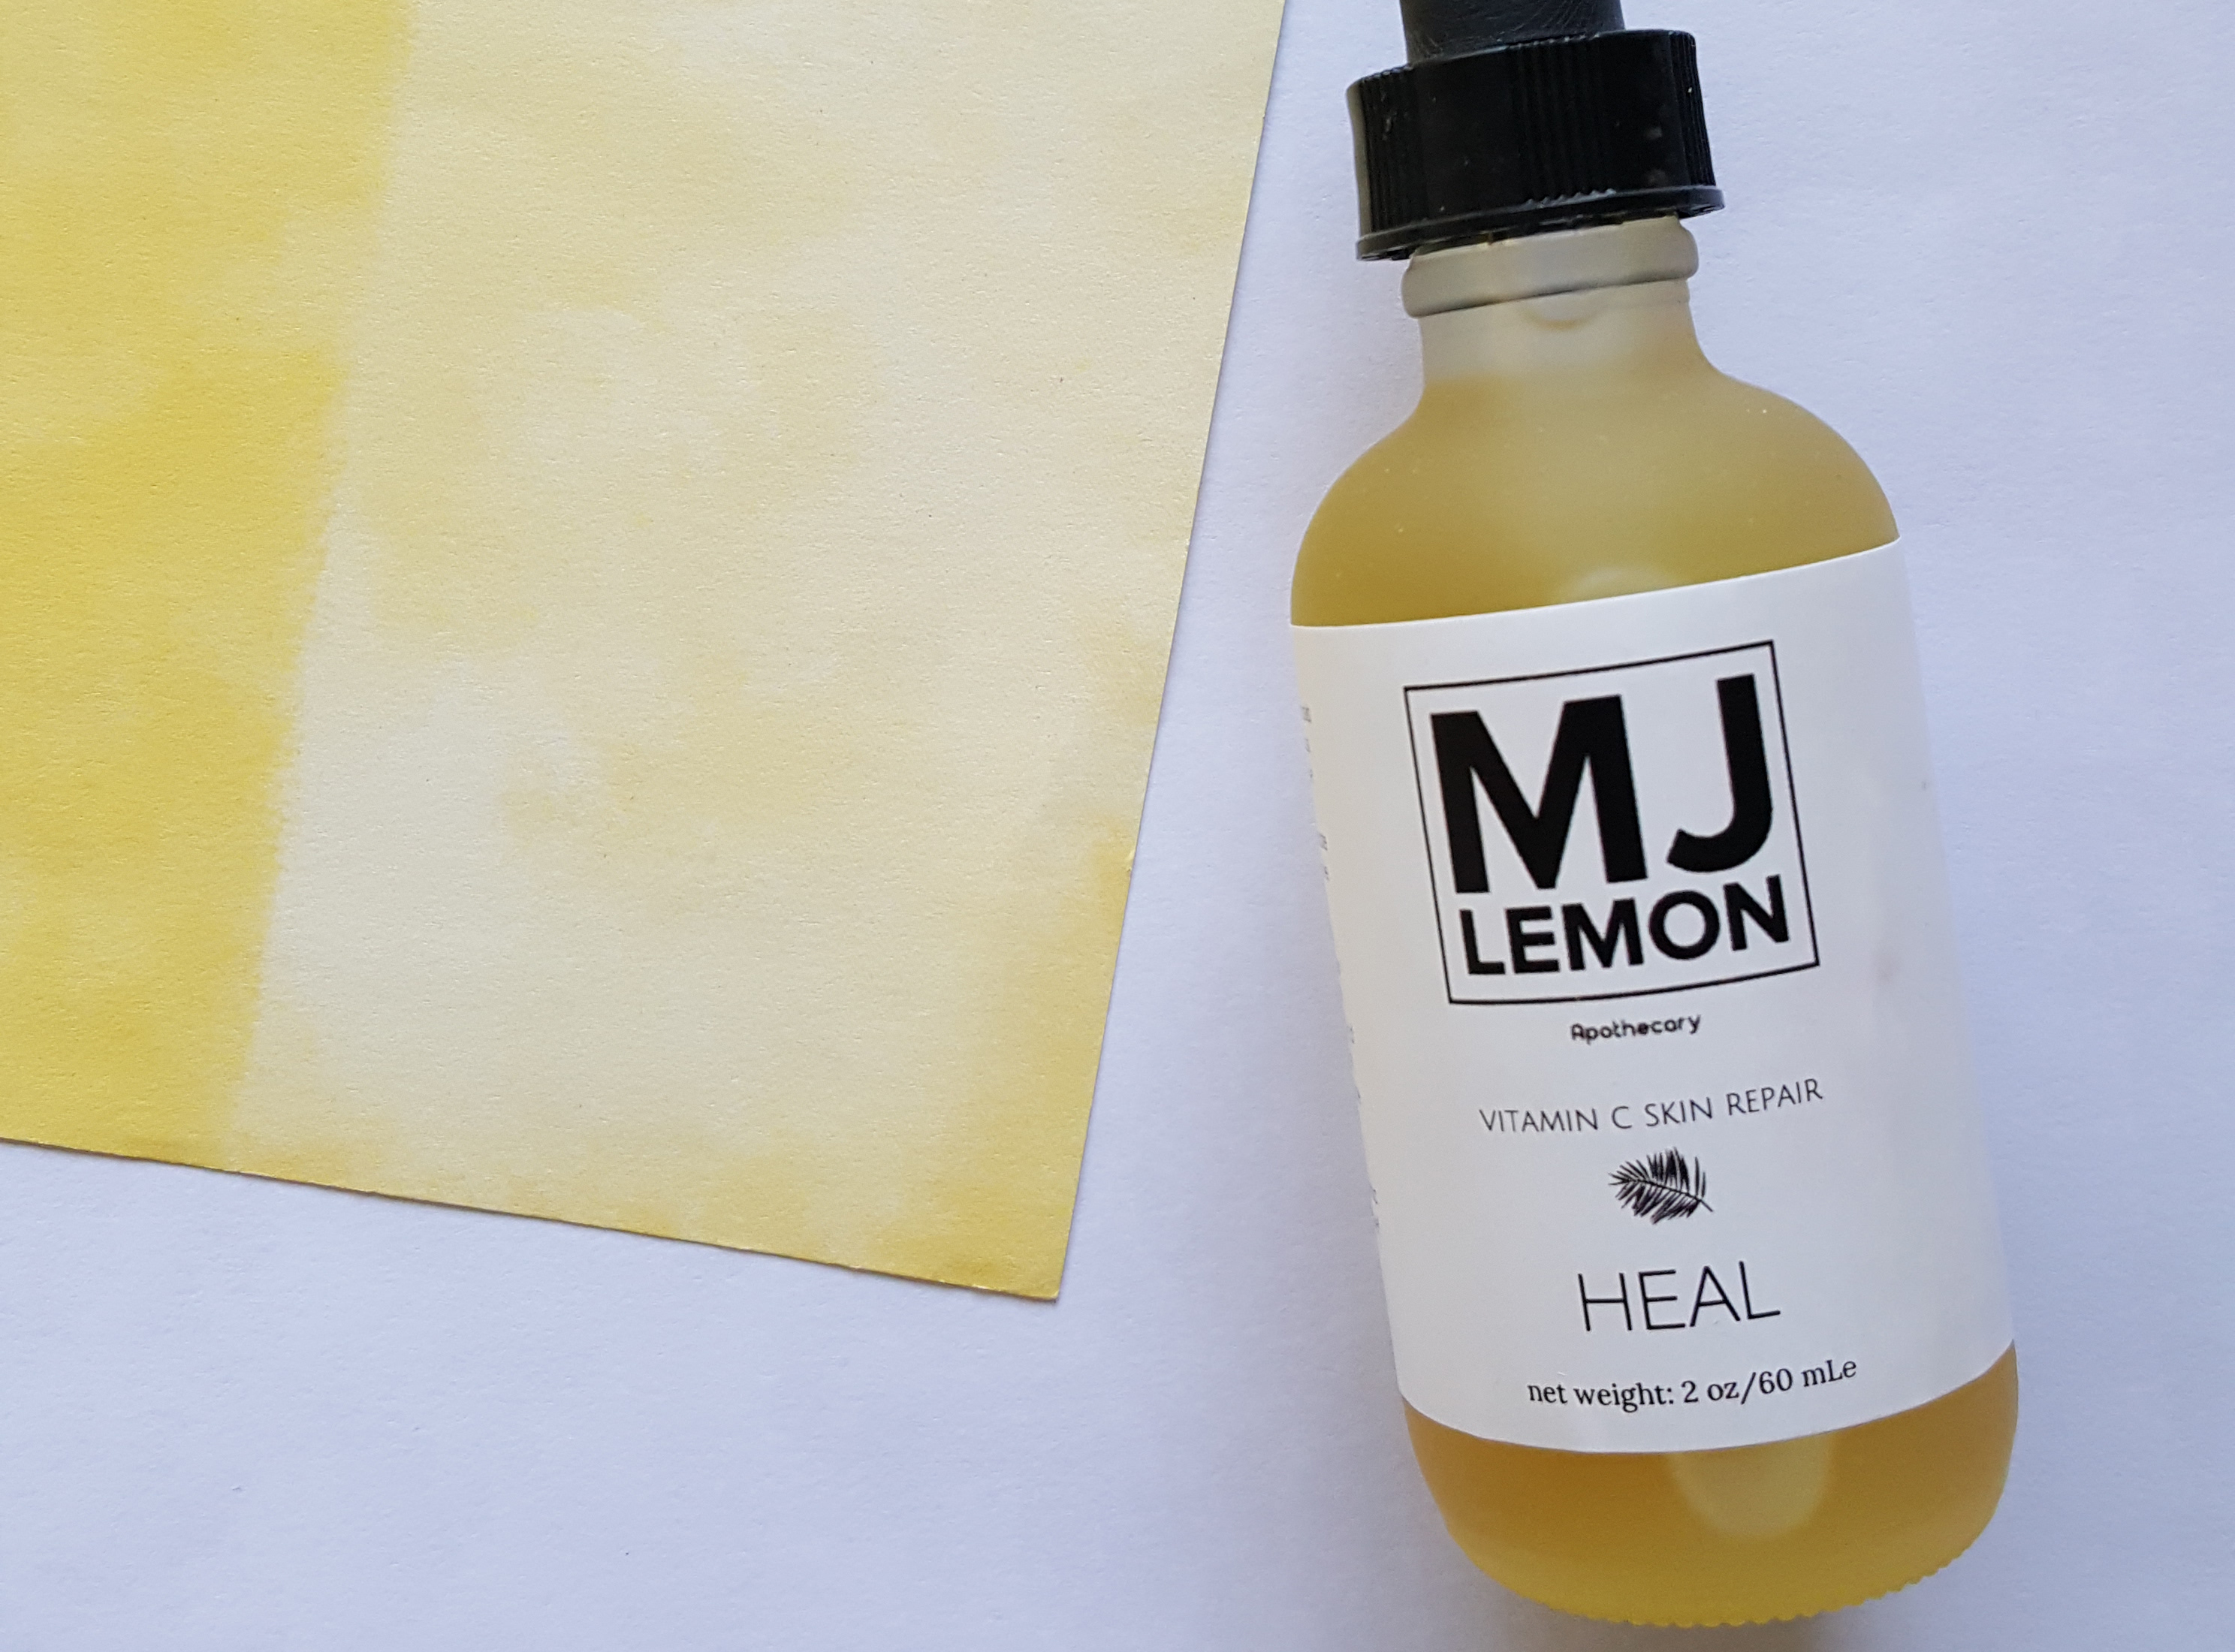 •	MJ Lemon Vitamin C Skin Repair Heal